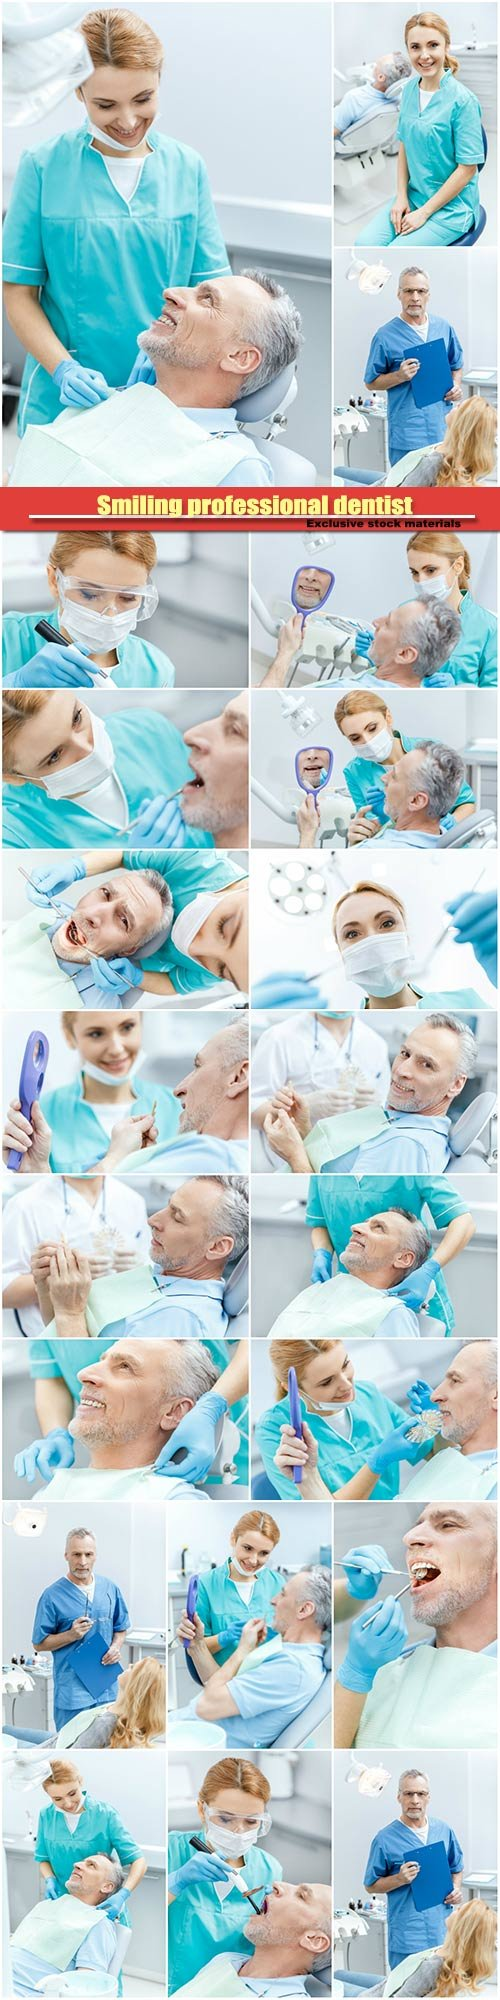 Smiling professional dentist looking at patient